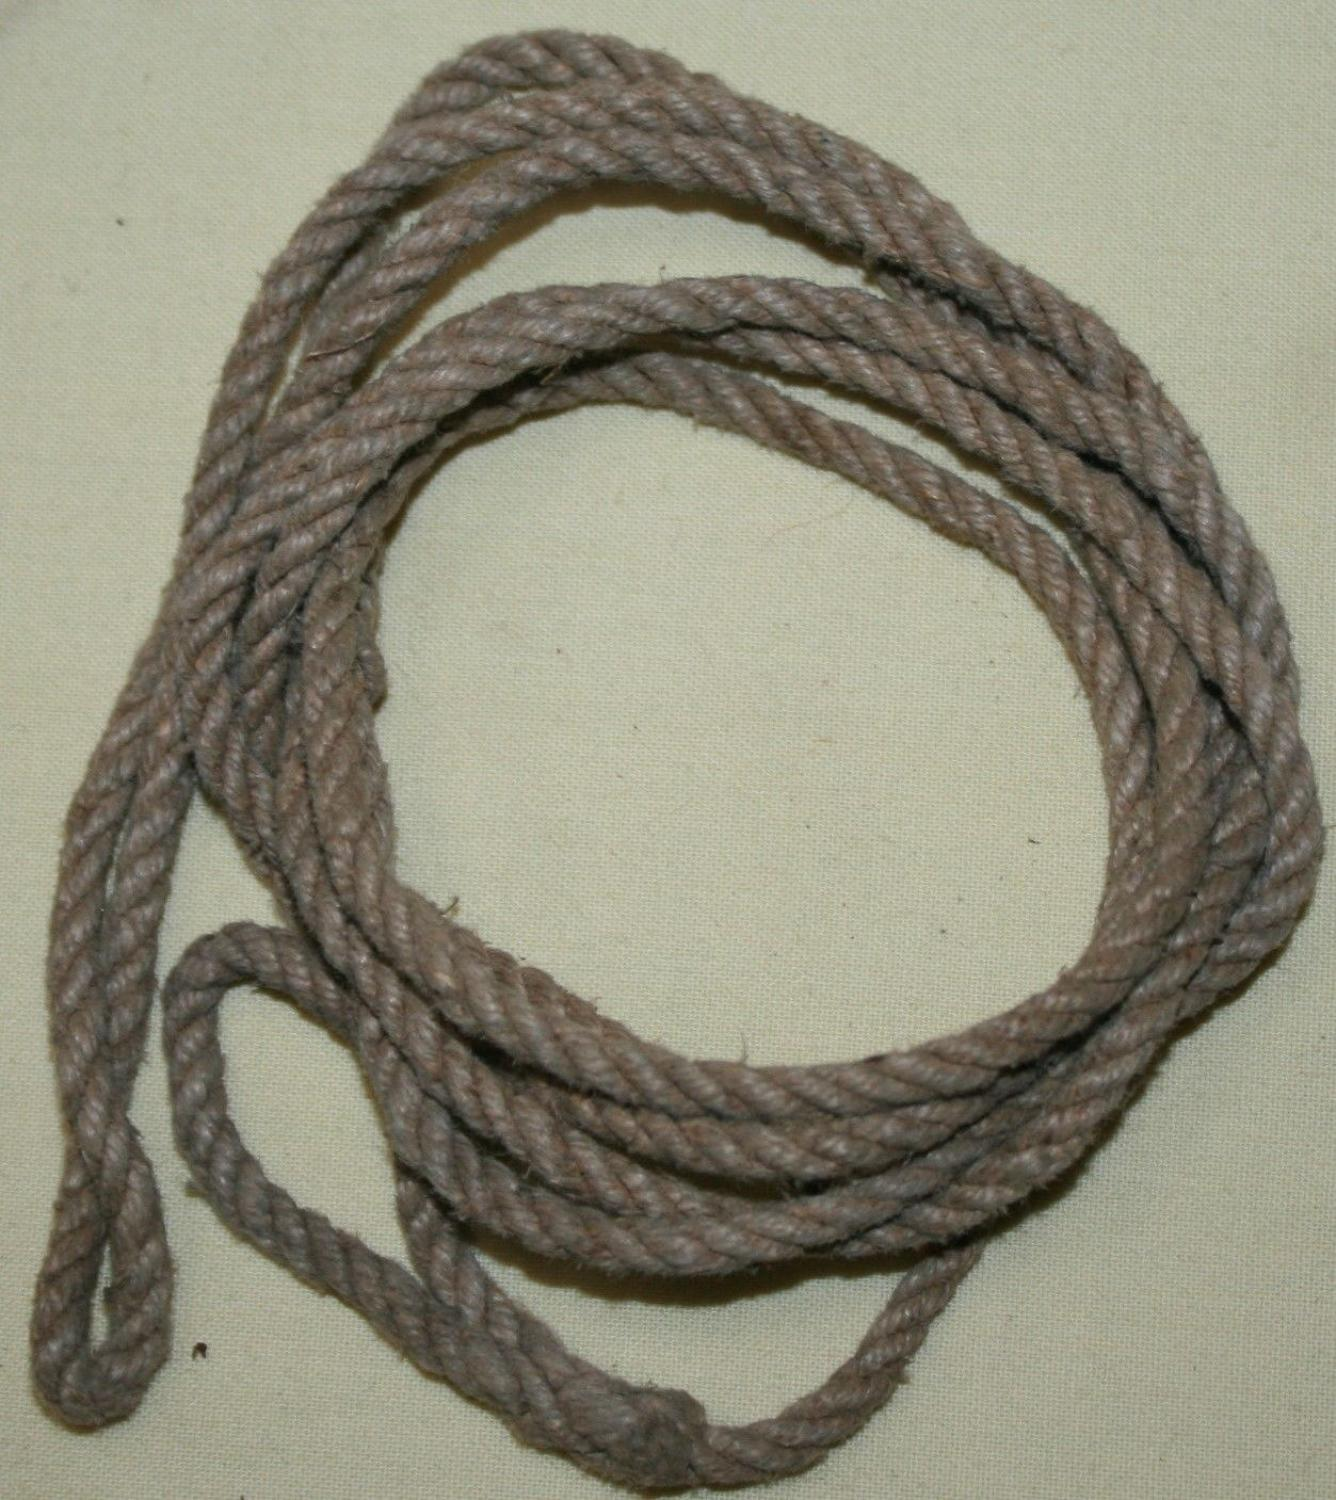 A WWII OTHER RANKS EXAMPLE OF THE PISTOL LANYARD